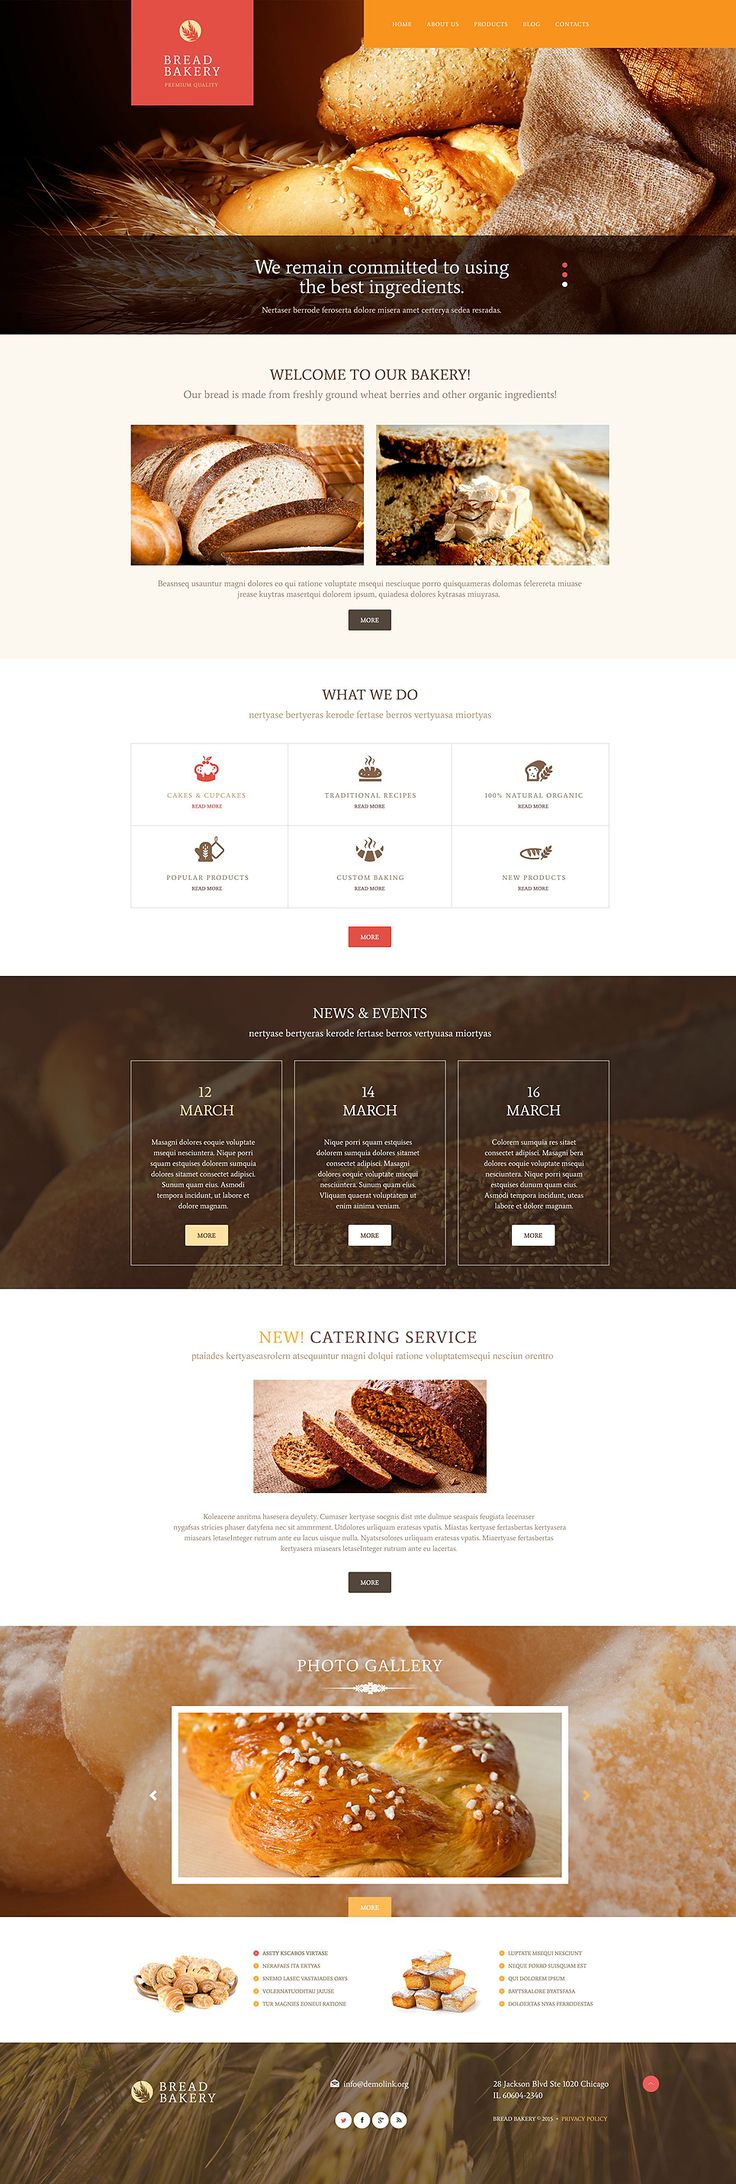 bakery #wordpress template #wordpresstheme wordpress website template